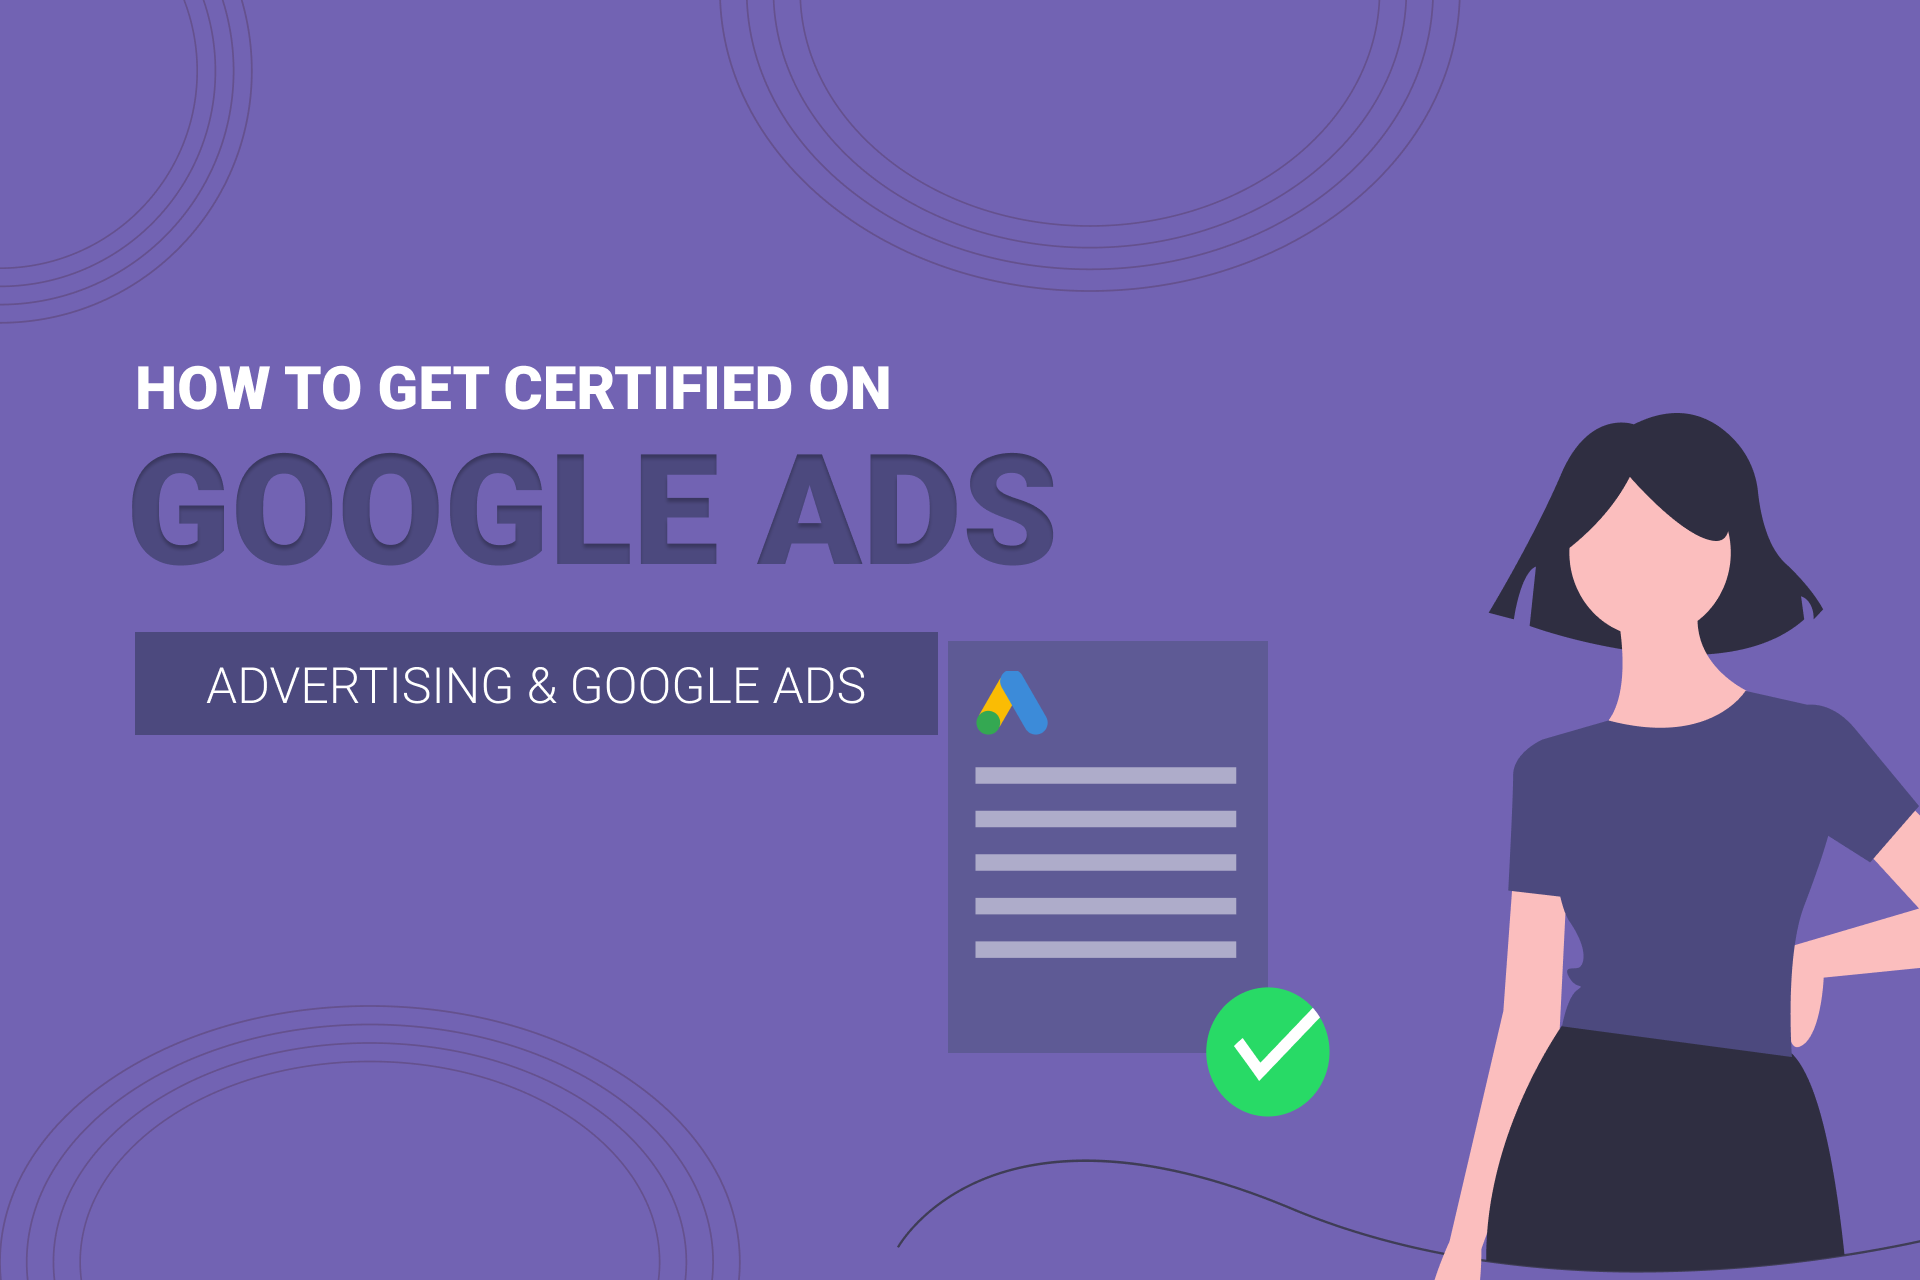 How To Get Google Ads Certified